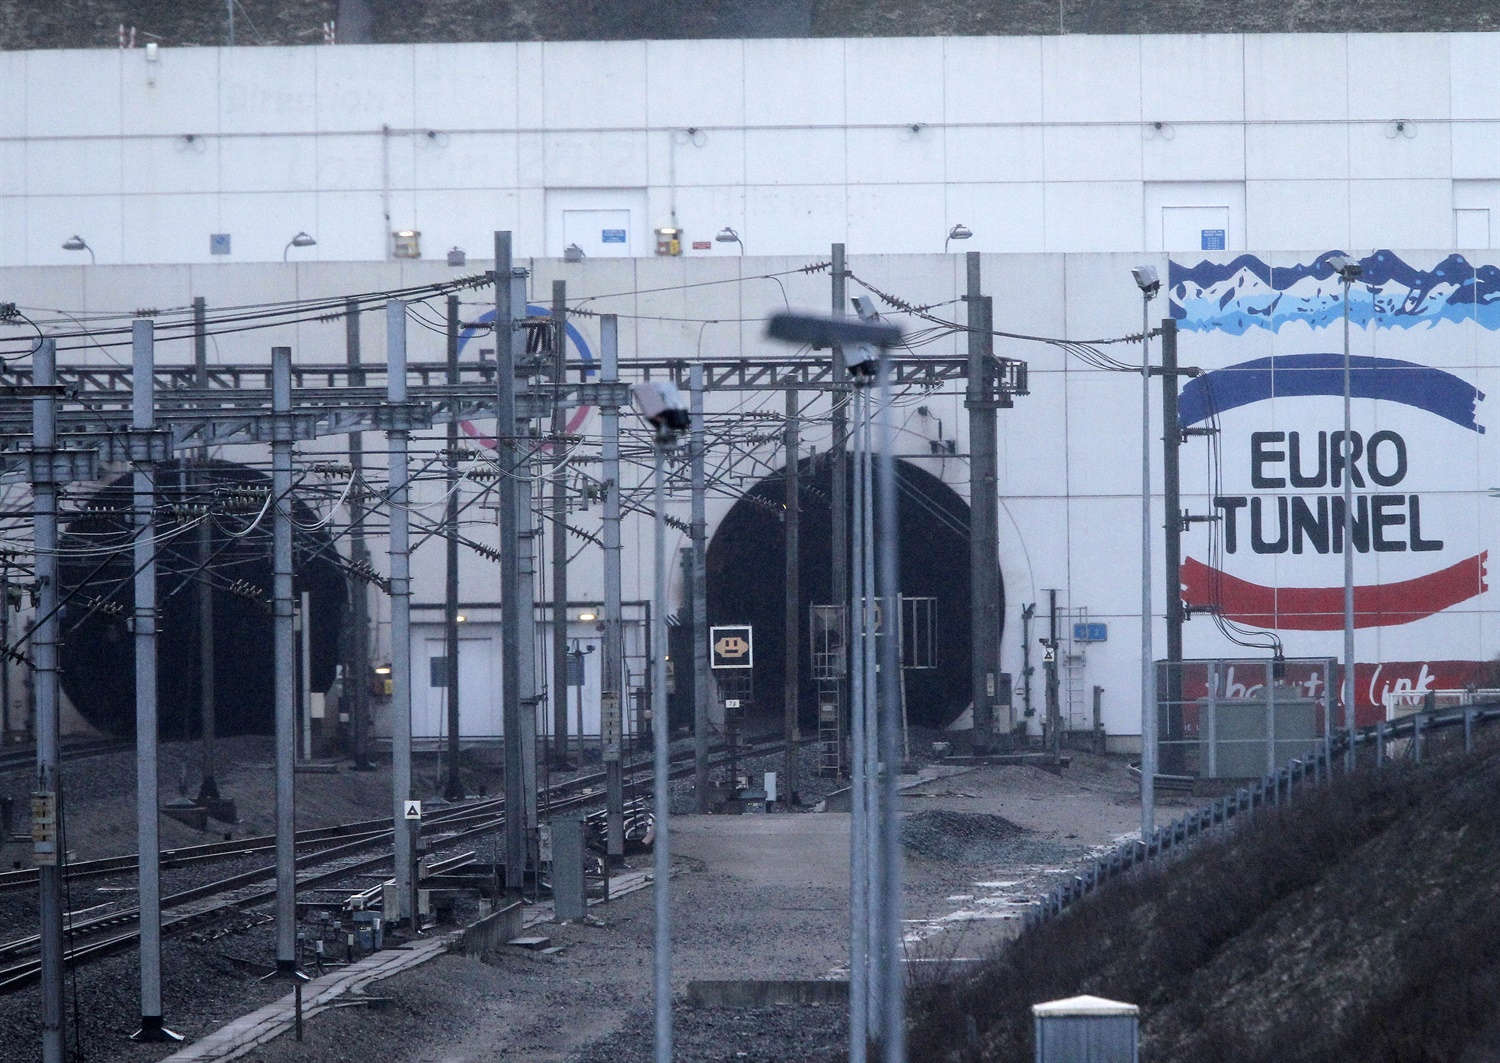 RAIB to work with French authorities to investigate Eurotunnel fire